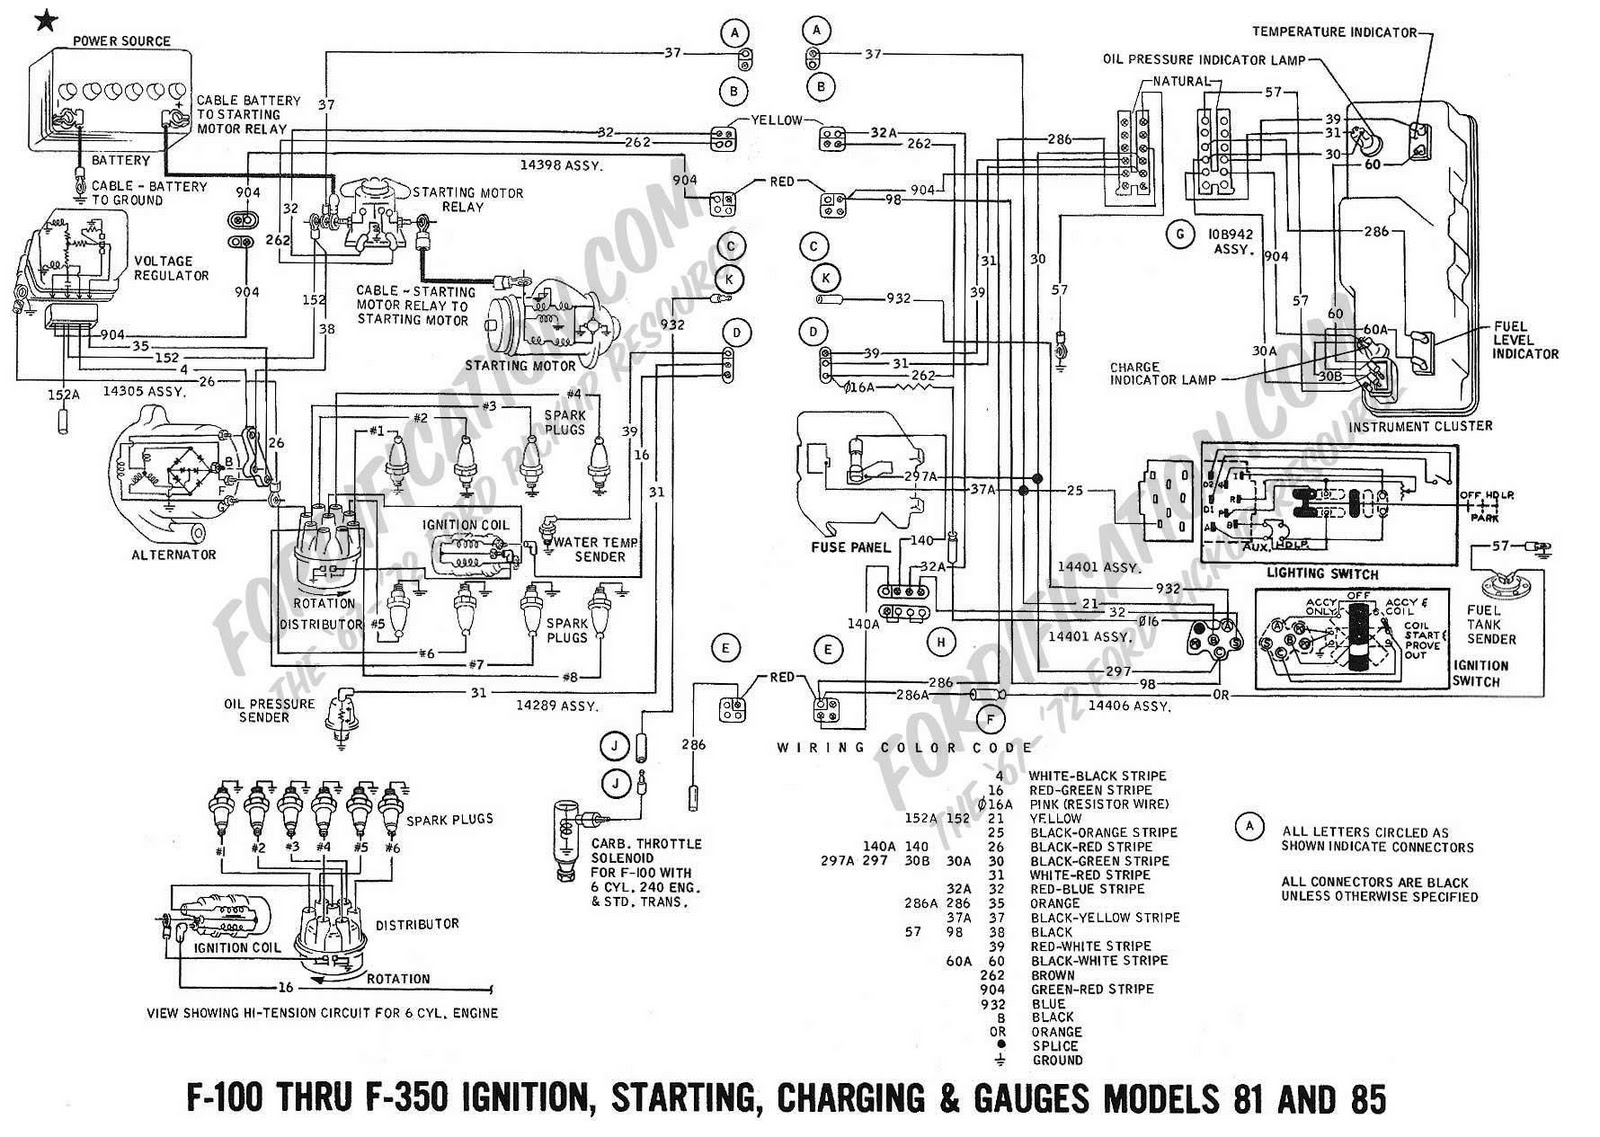 medium resolution of 65 ford galaxie wiring diagram schematic blog about wiring diagrams 1970 ford mustang wiring diagram 1966